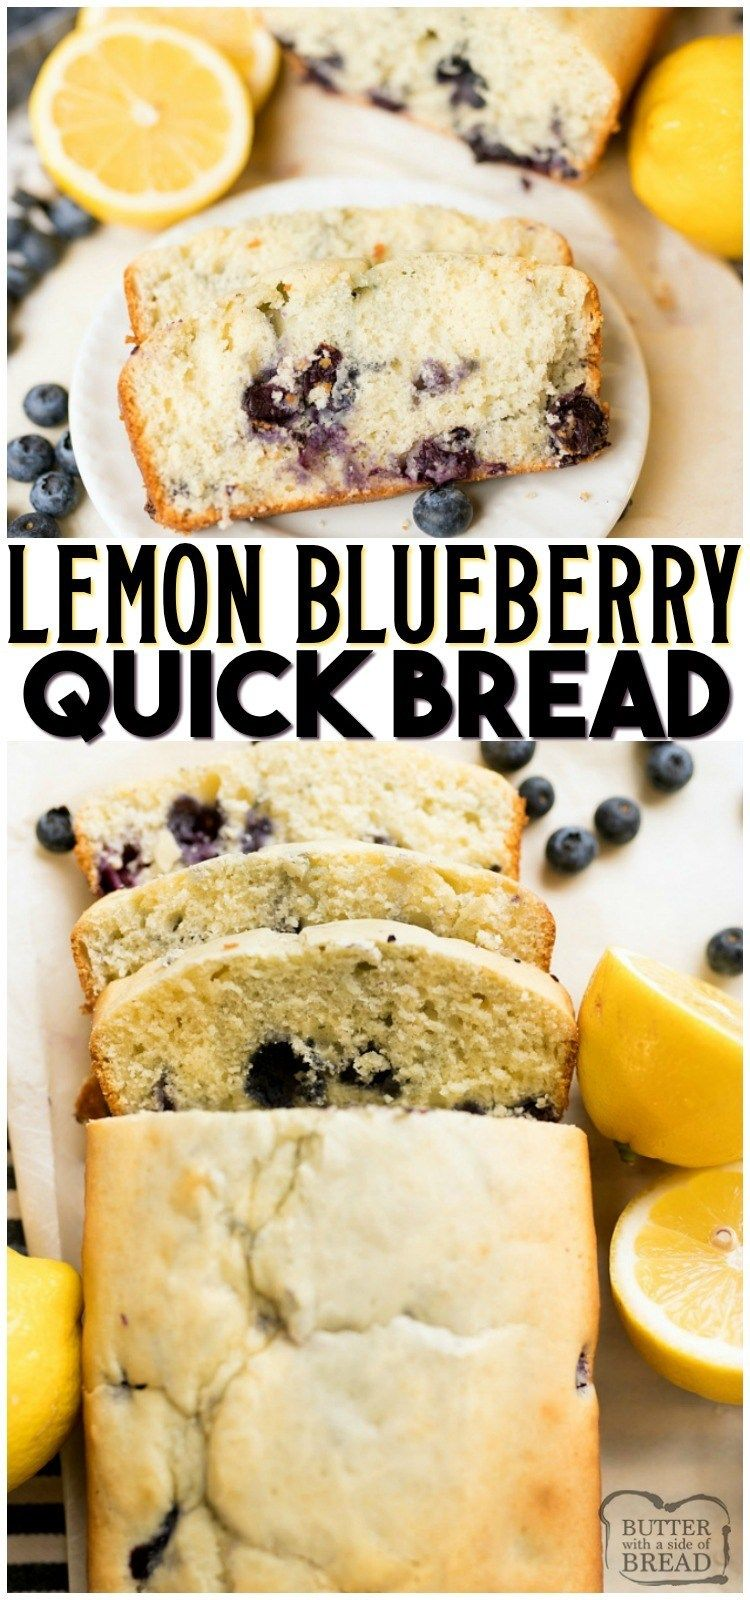 5e3d11fc65ba Lemon Blueberry Quick Bread is a deliciously moist and fresh quick bread  recipe loaded with blueberries